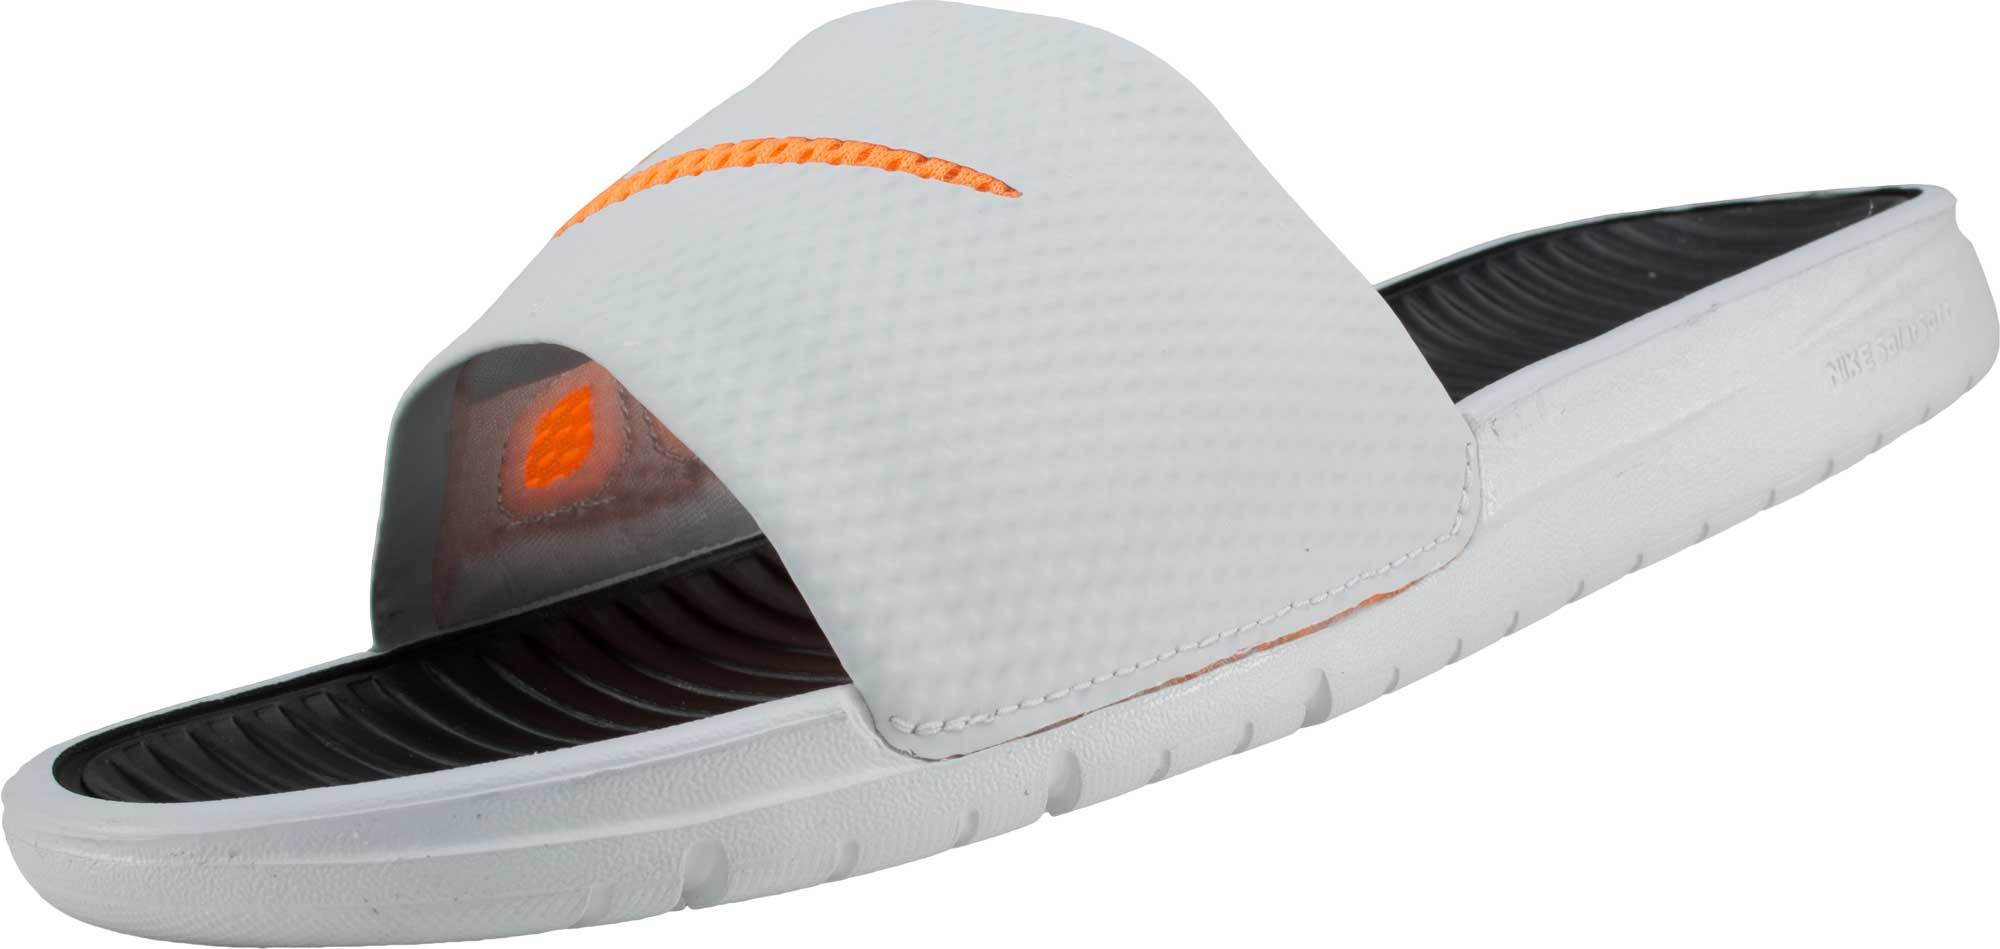 ba36d43a7701 Nike Benassi Solarsoft Slide - Base Grey with Black - Soccer Master